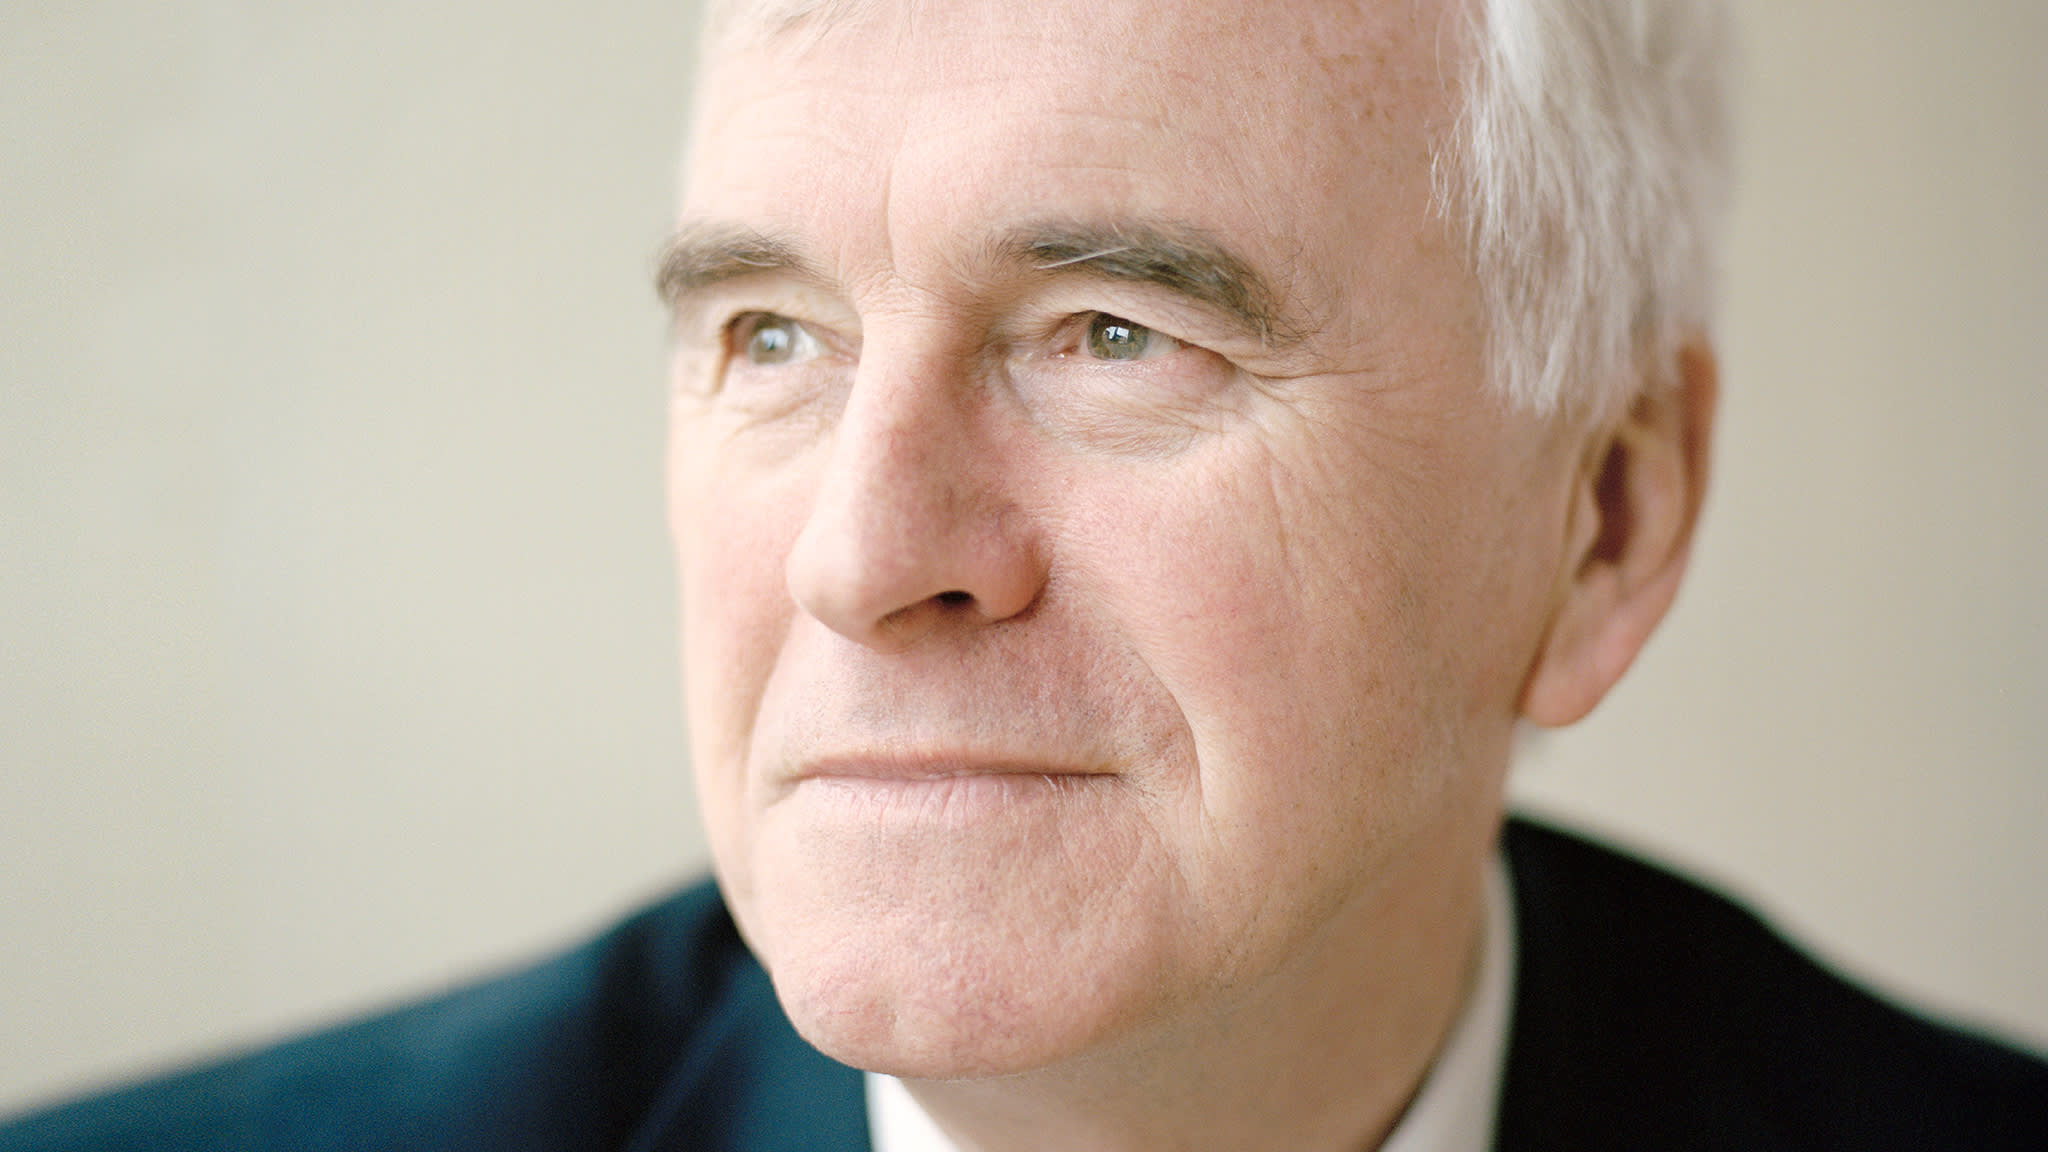 John McDonnell interview: is Britain ready for a socialist chancellor?